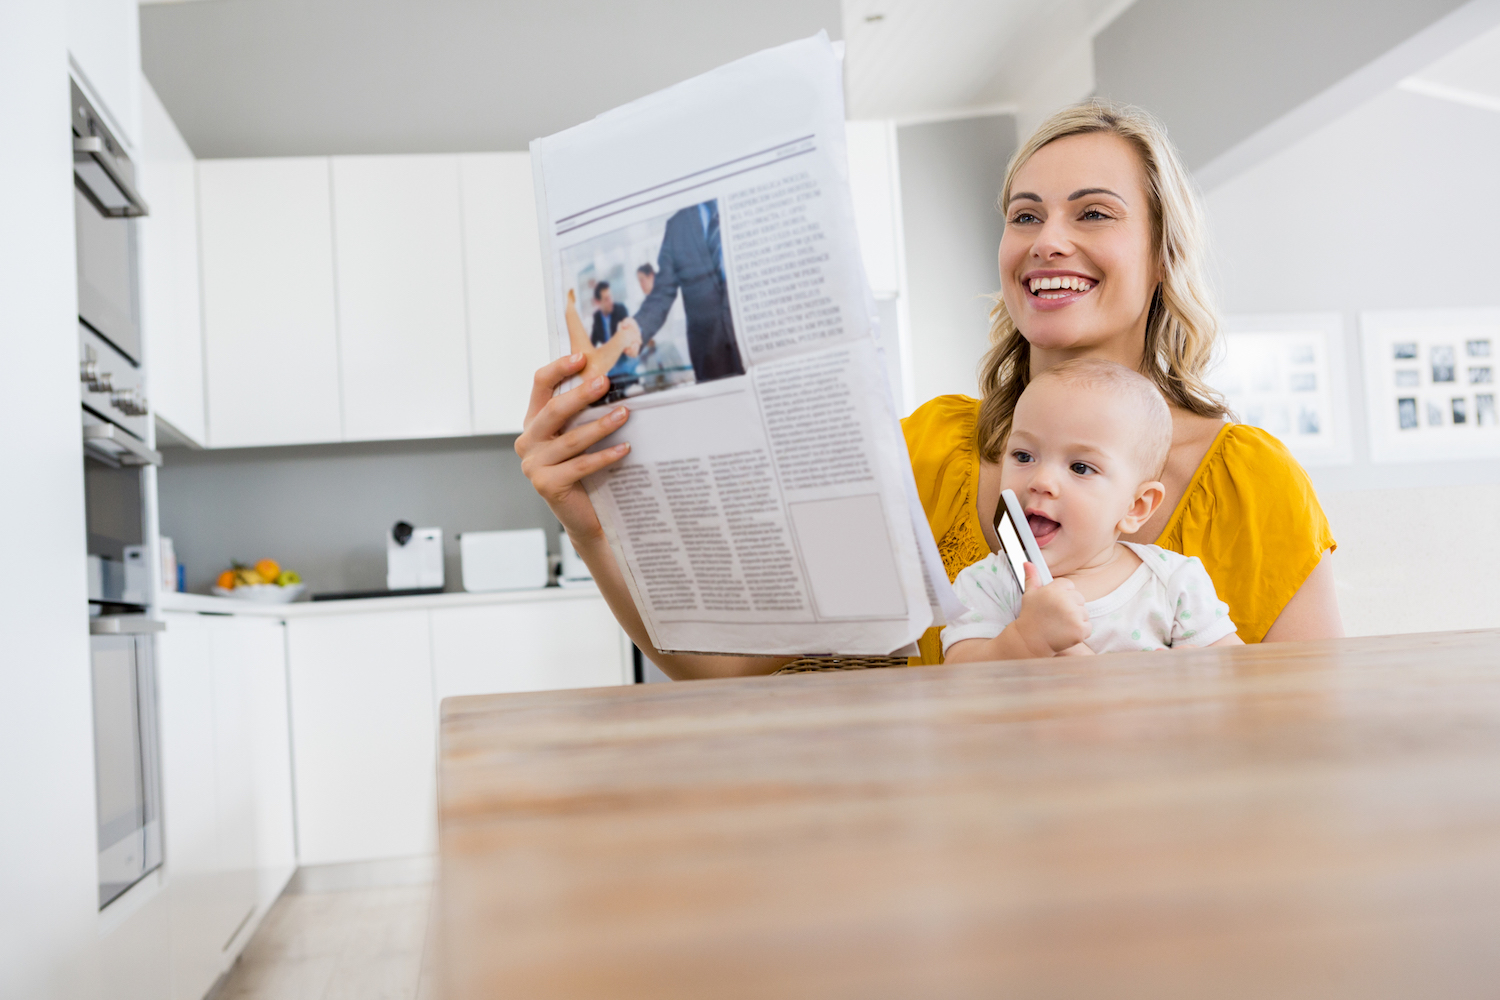 Create a newspaper as a great baby shower invitation - Happiedays